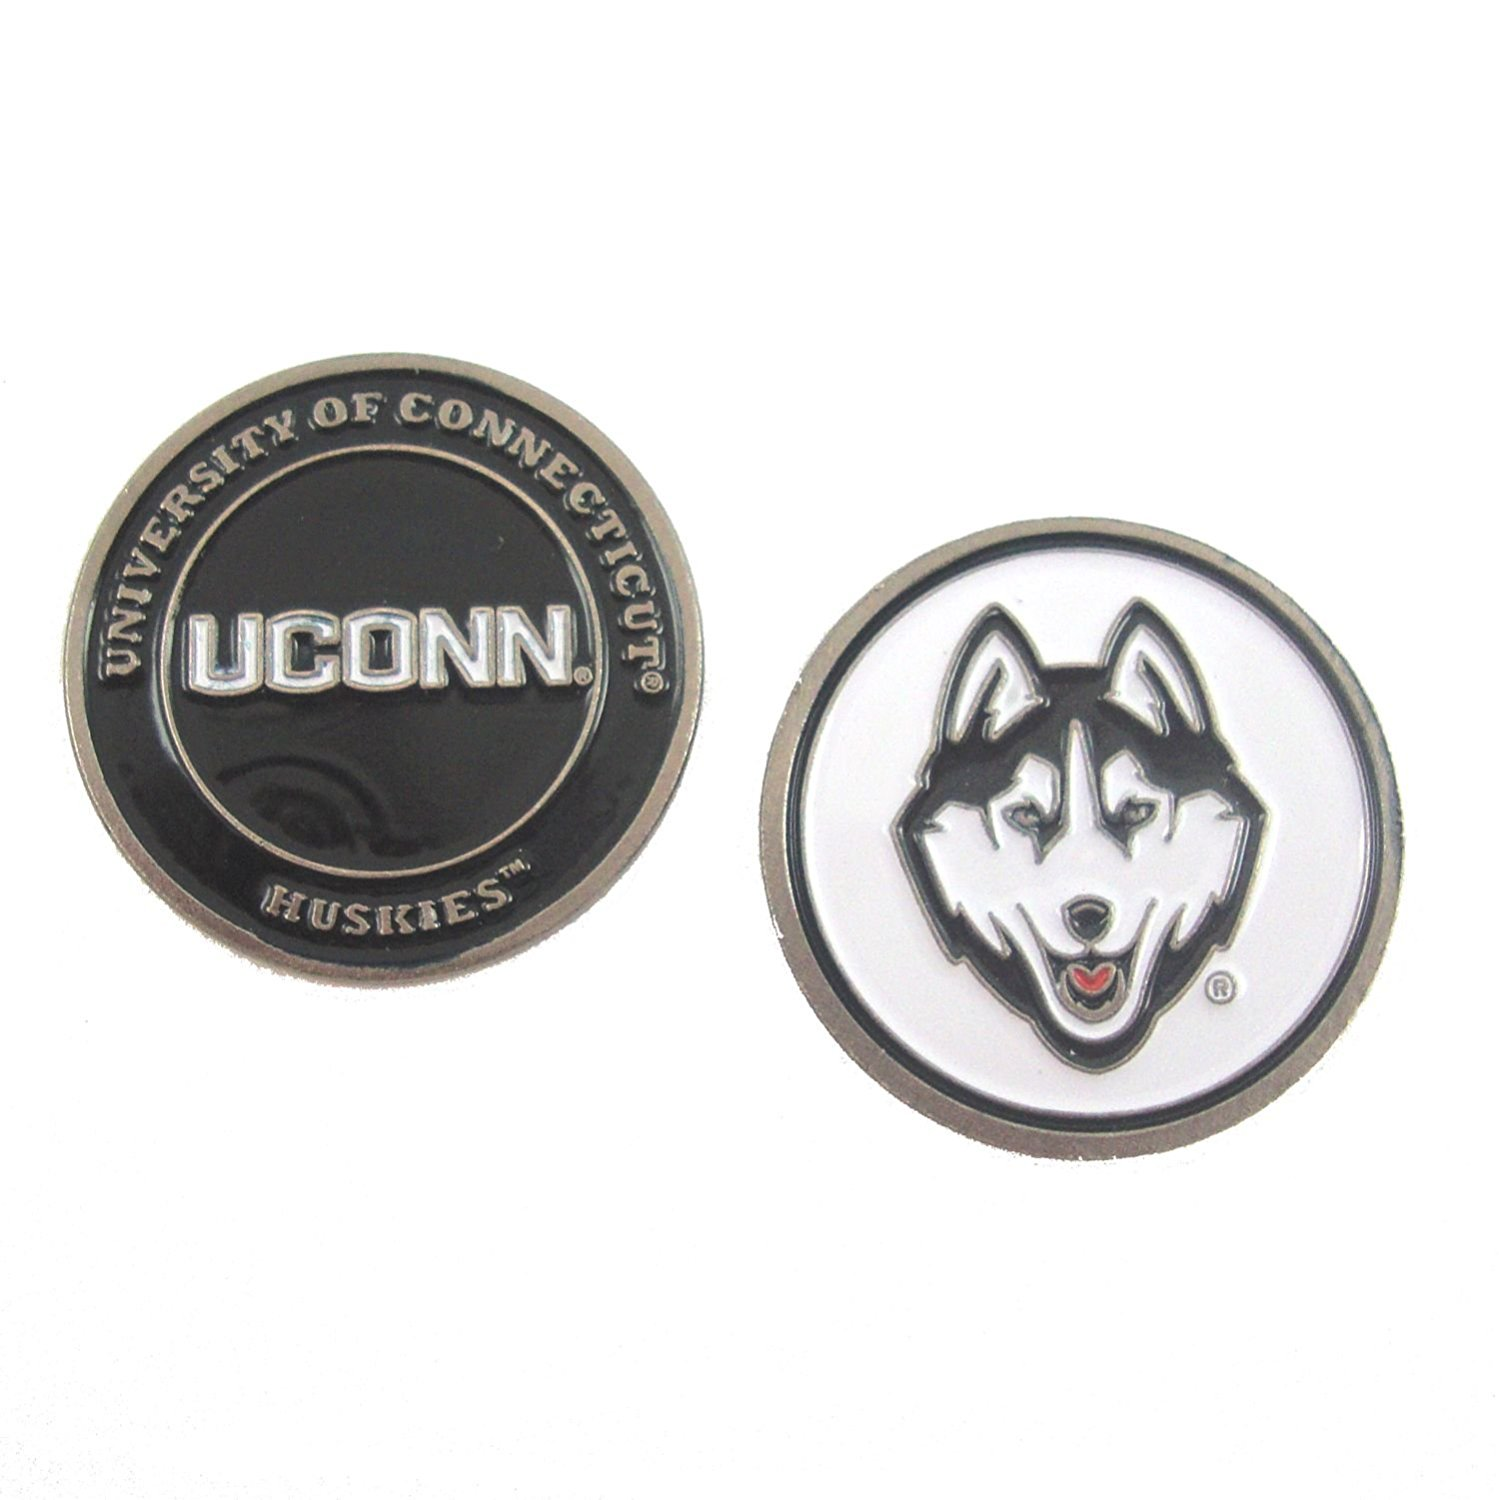 UConn Huskies Double-Sided Golf Ball Marker, University of Connecticut Golf Ball Marker By Waggle Pro Shop,USA